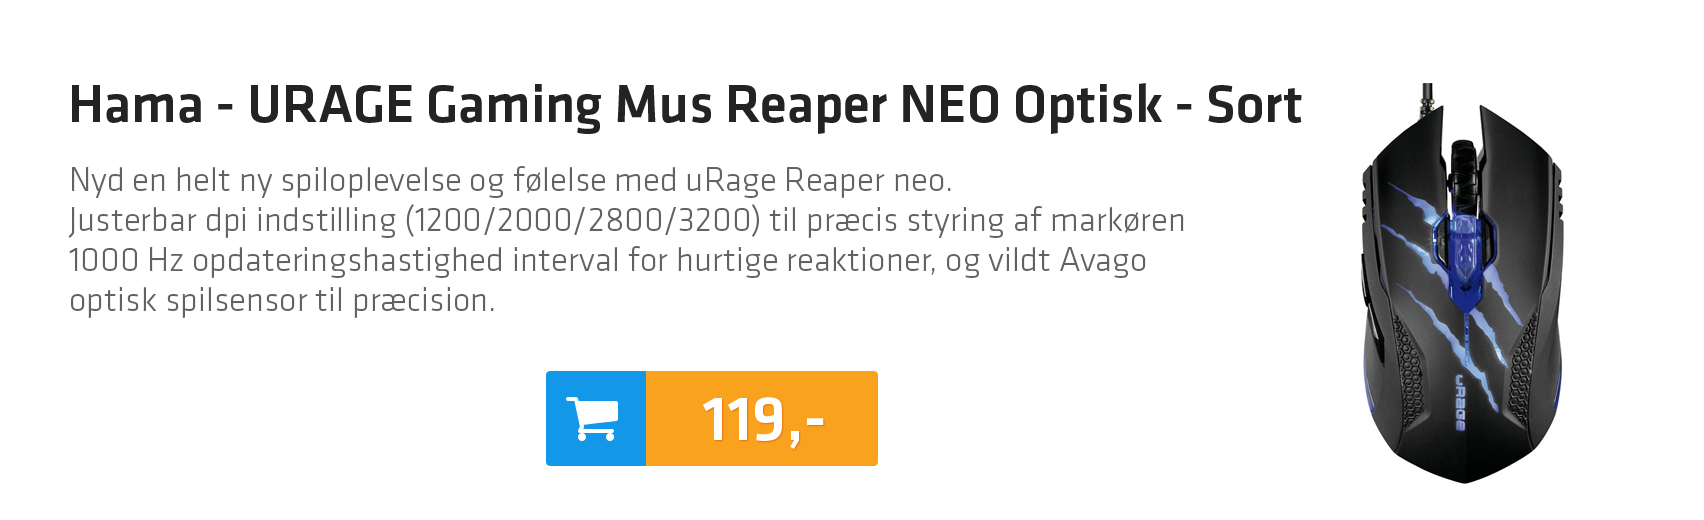 Hama - URAGE Gaming Mus Reaper NEO Optisk - Sort